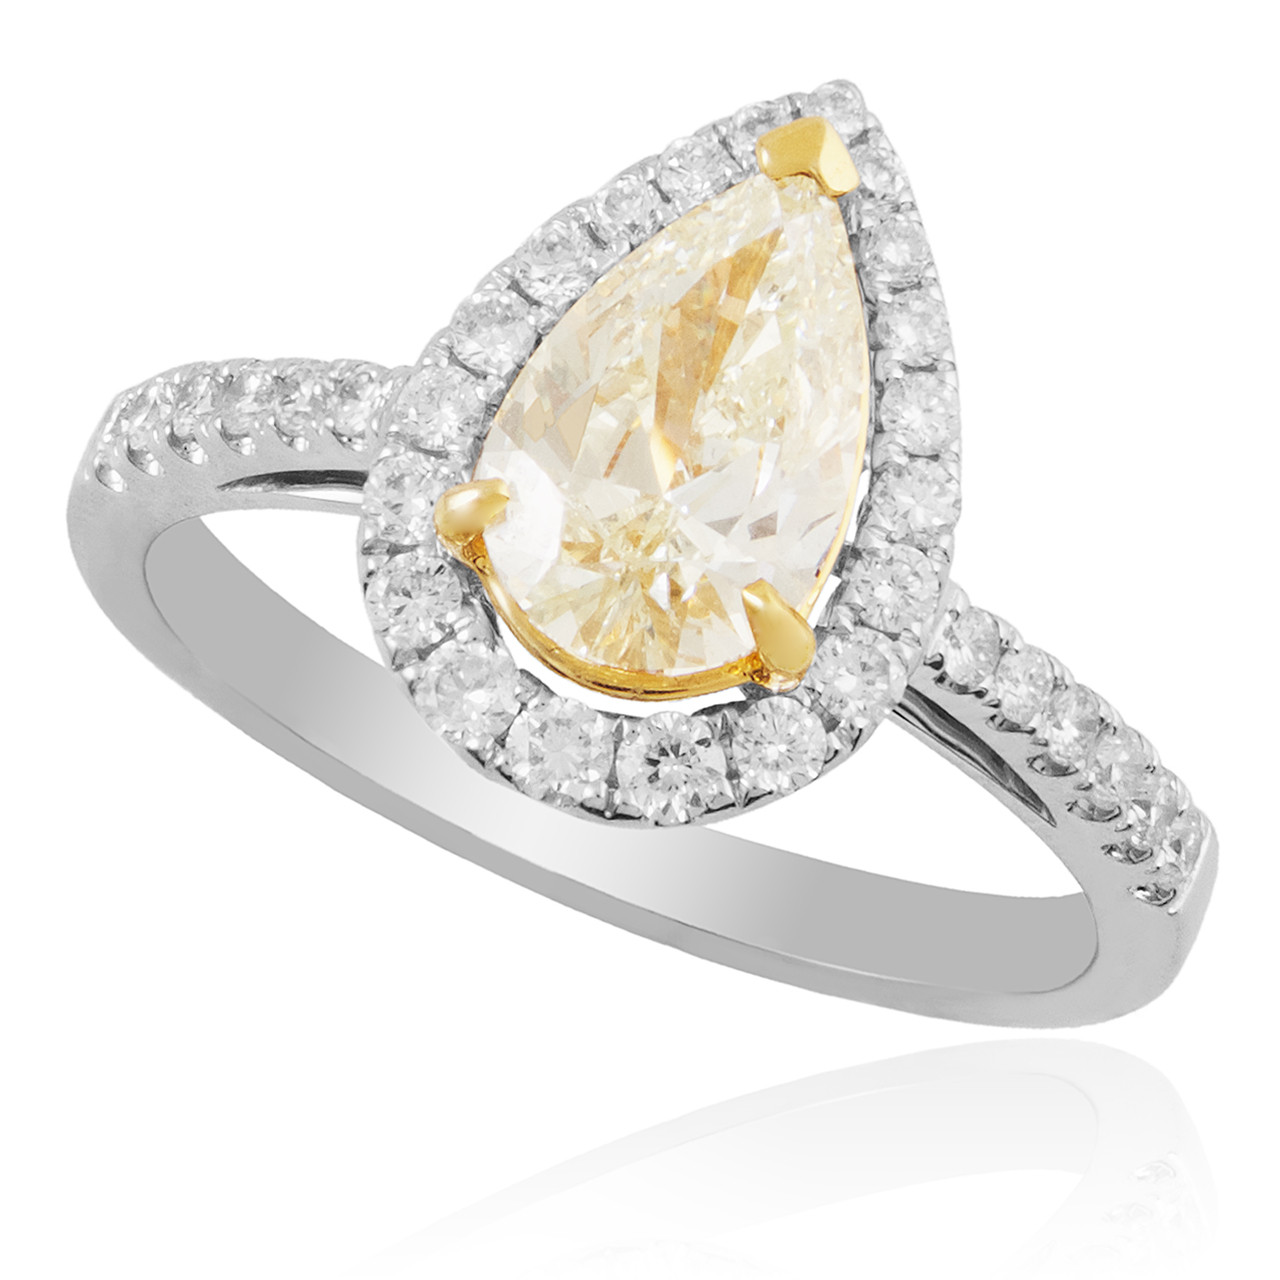 7615868a46 18K White Gold 1.45ct Pear Shape Canary Diamond Engagement Ring - Shyne  Jewelers